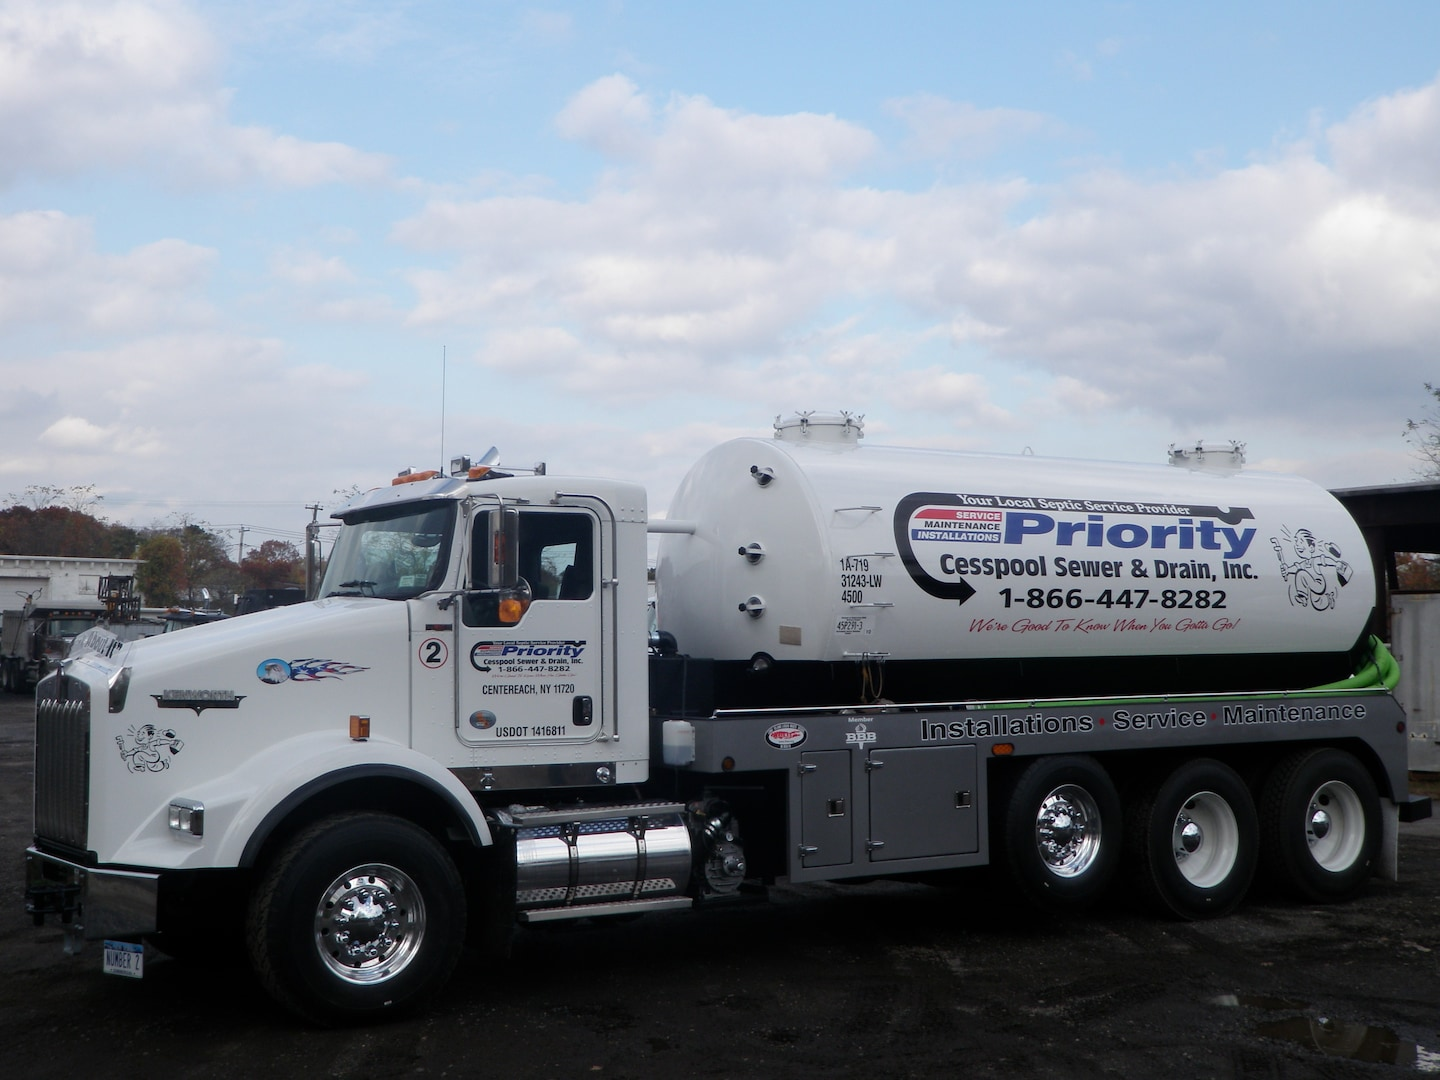 PRIORITY CESSPOOL SEWER & DRAIN, INC